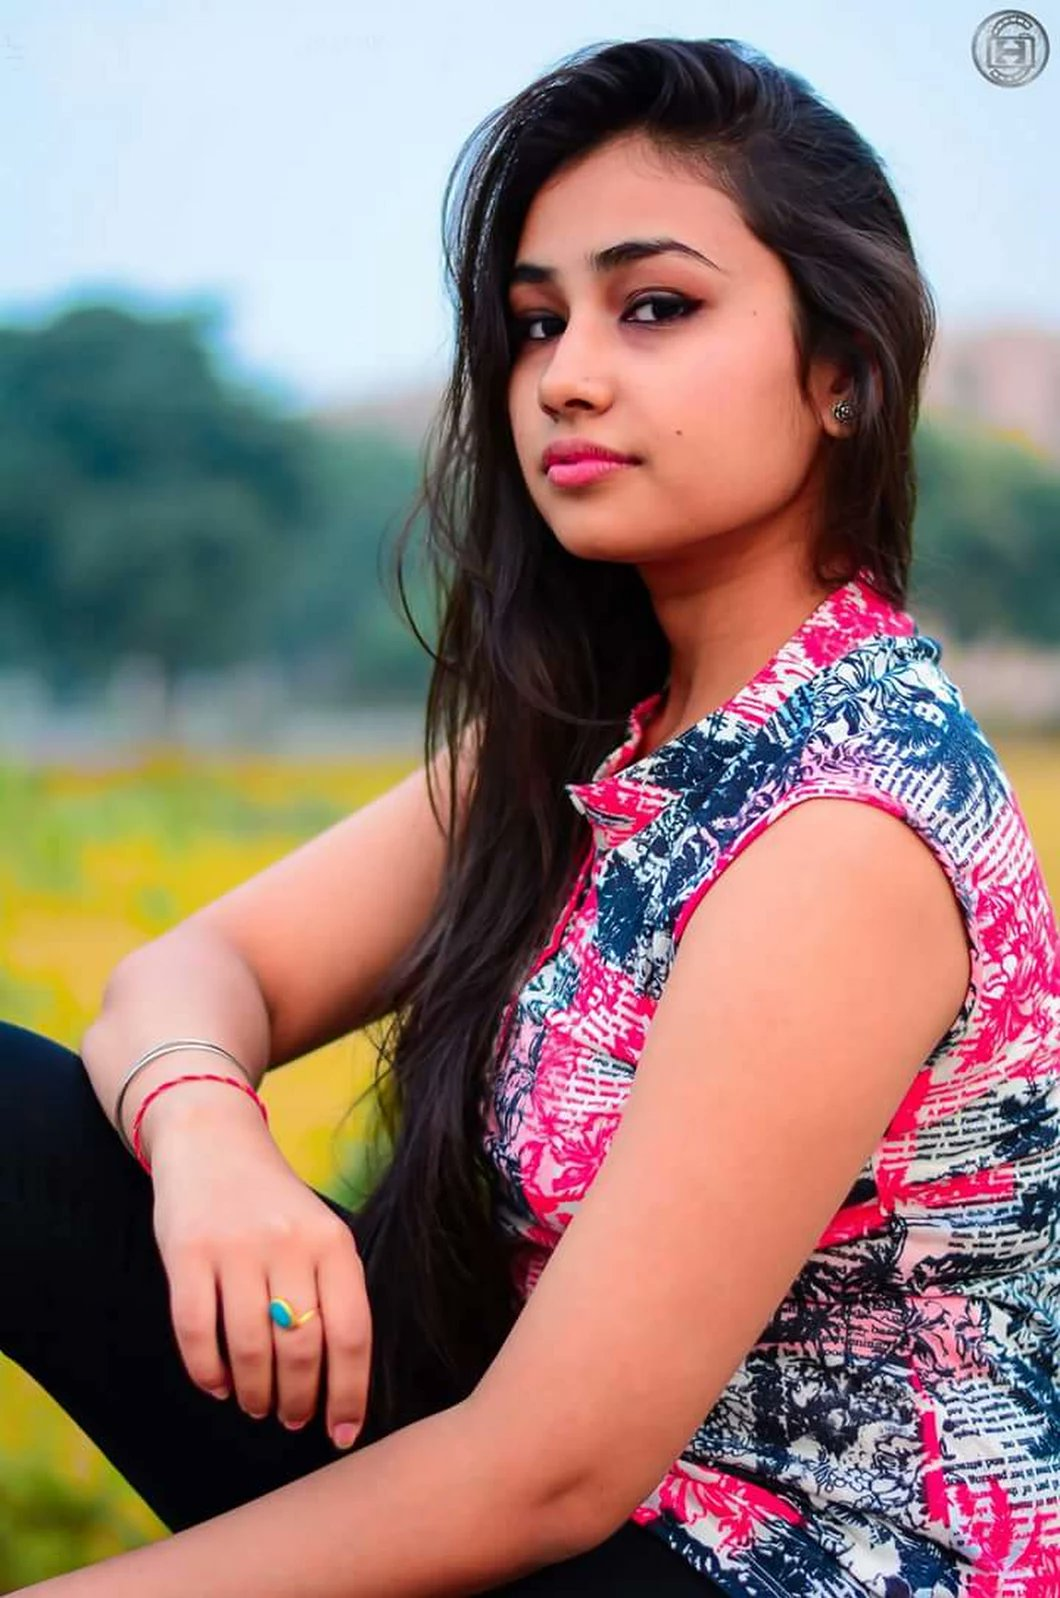 Most Beautiful Girl In World, Awesome Profile Pic For Girl -9747